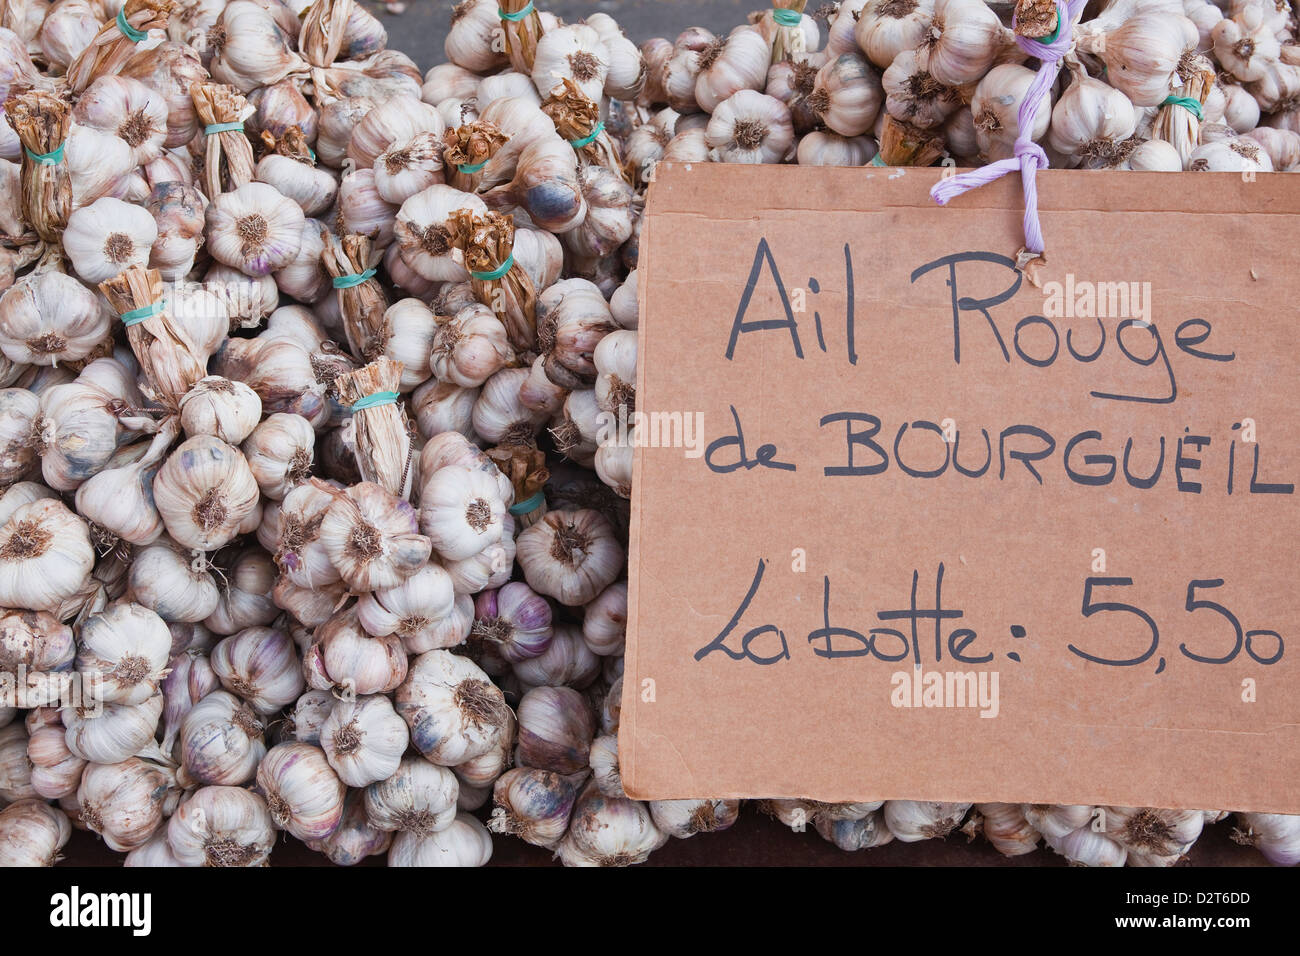 Bulbs of garlic on sale at a market in Tours, Indre-et-Loire, Loire Valley, France, Europe - Stock Image